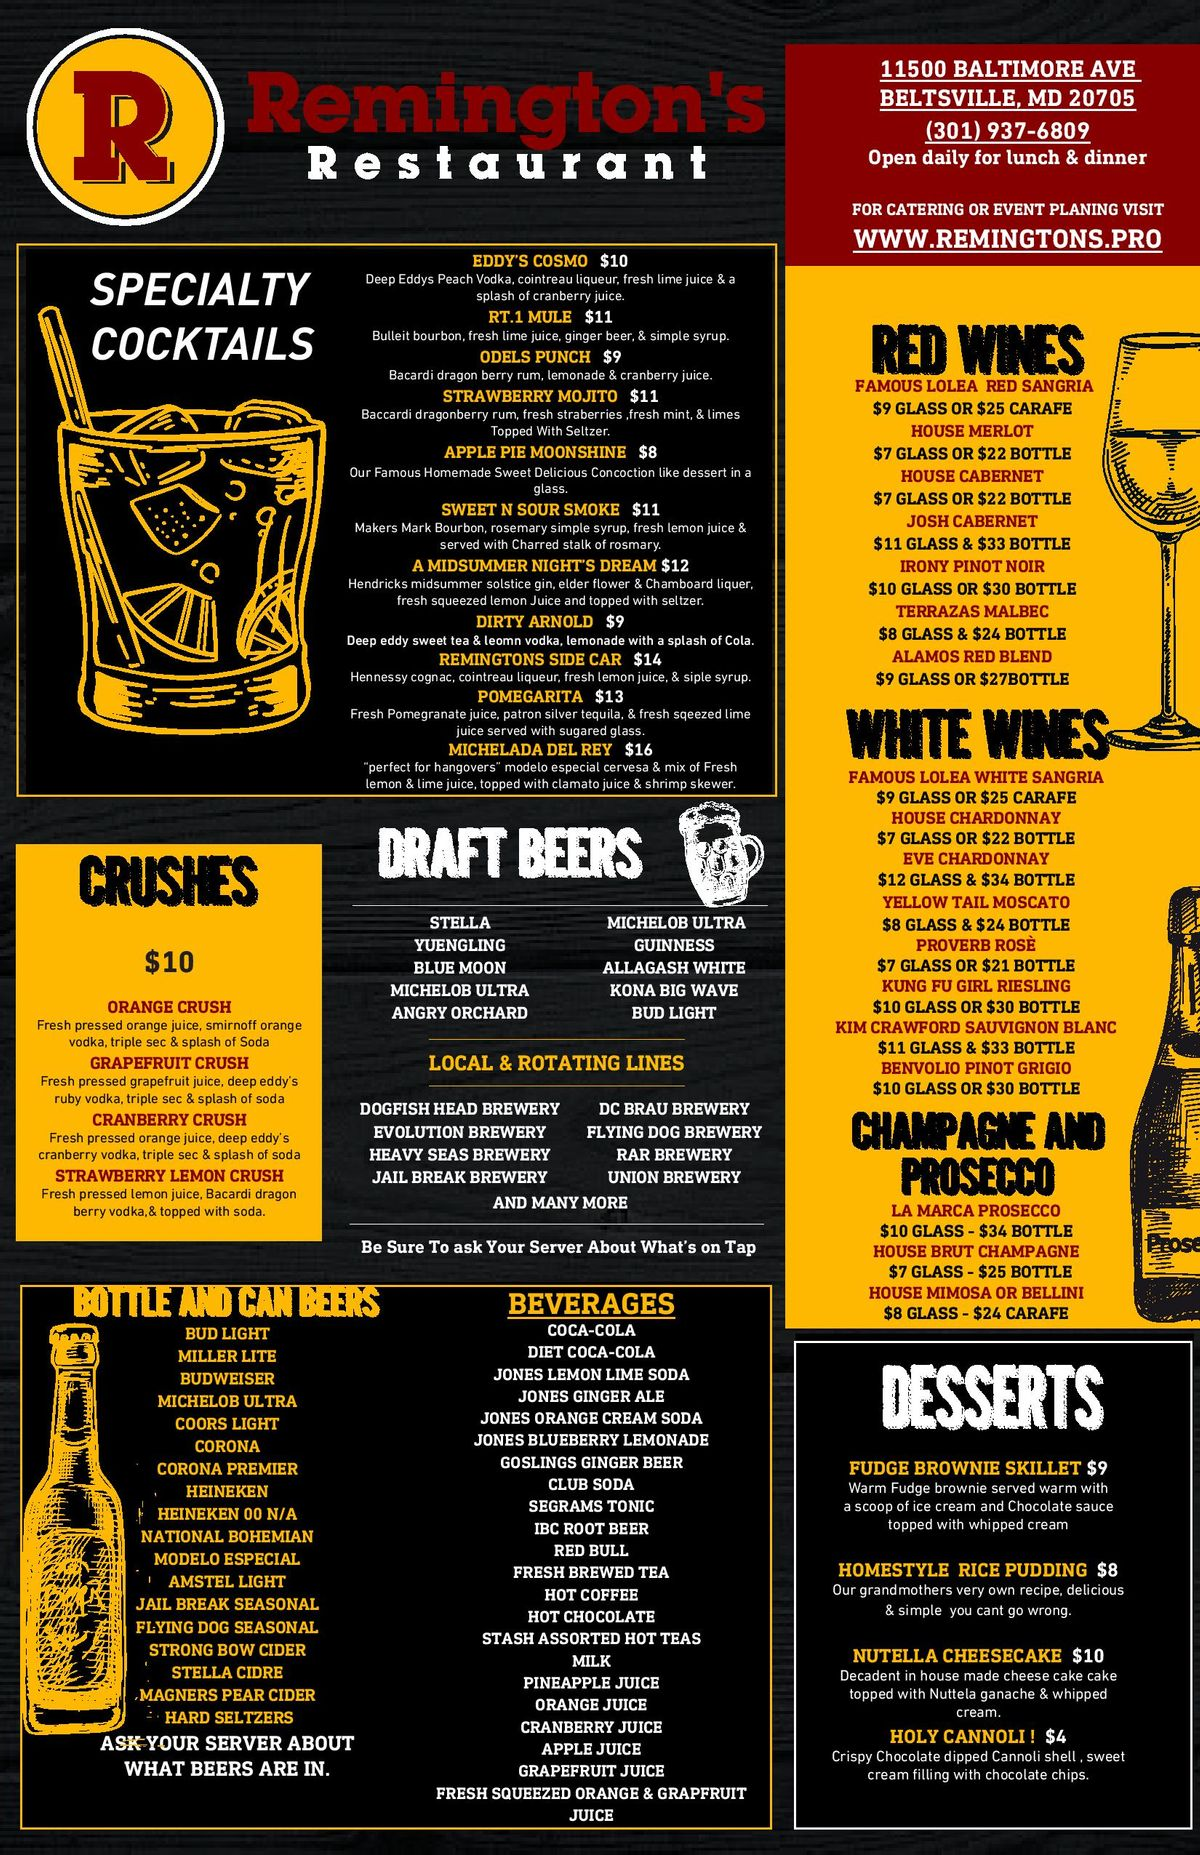 Remingtons Menu update corona virus-page-002.jpg